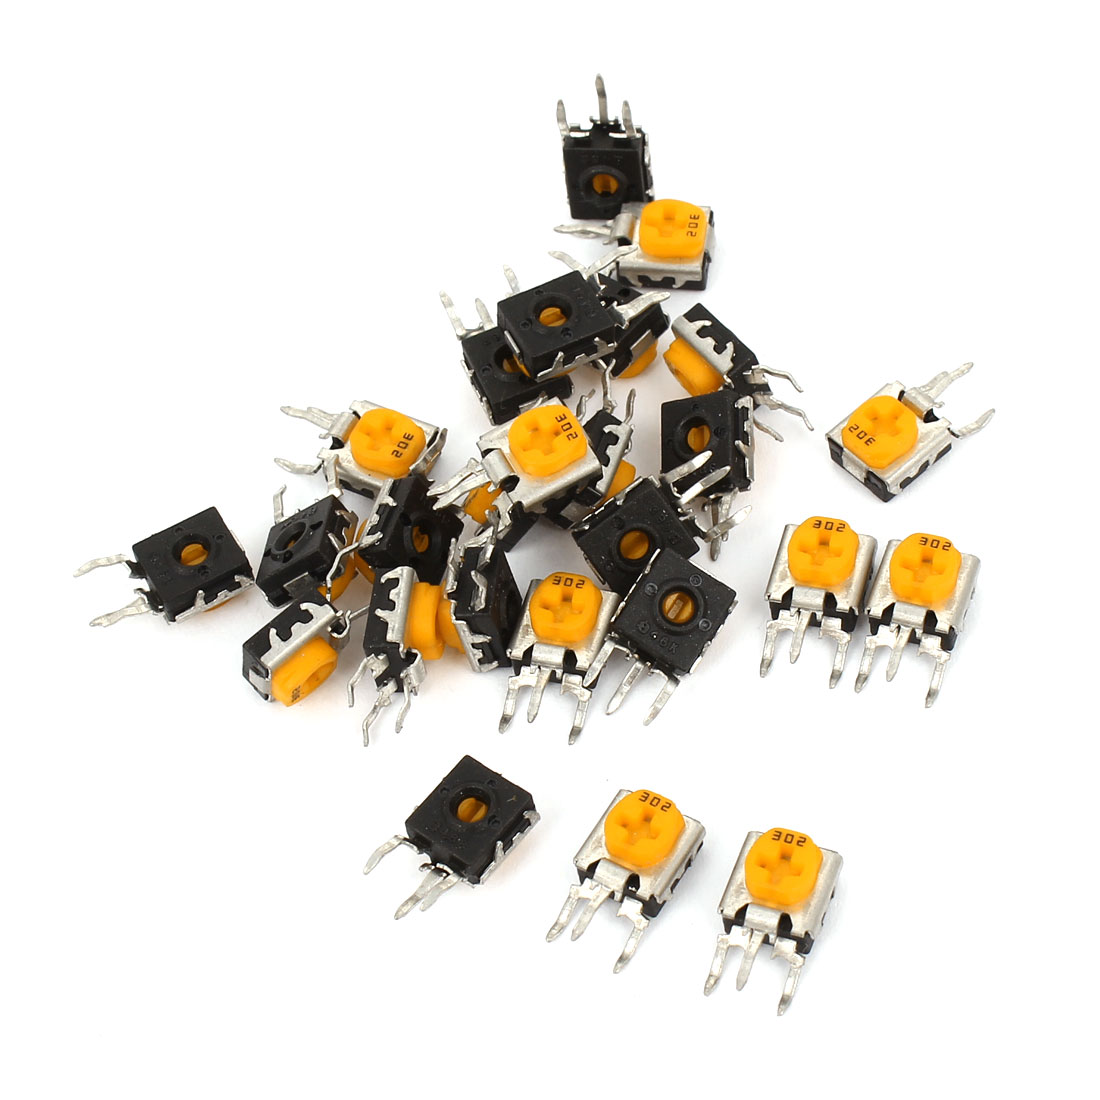 26pcs Variable Resistors Trimmer Potentiometers 302 3K Ohm 0.25W